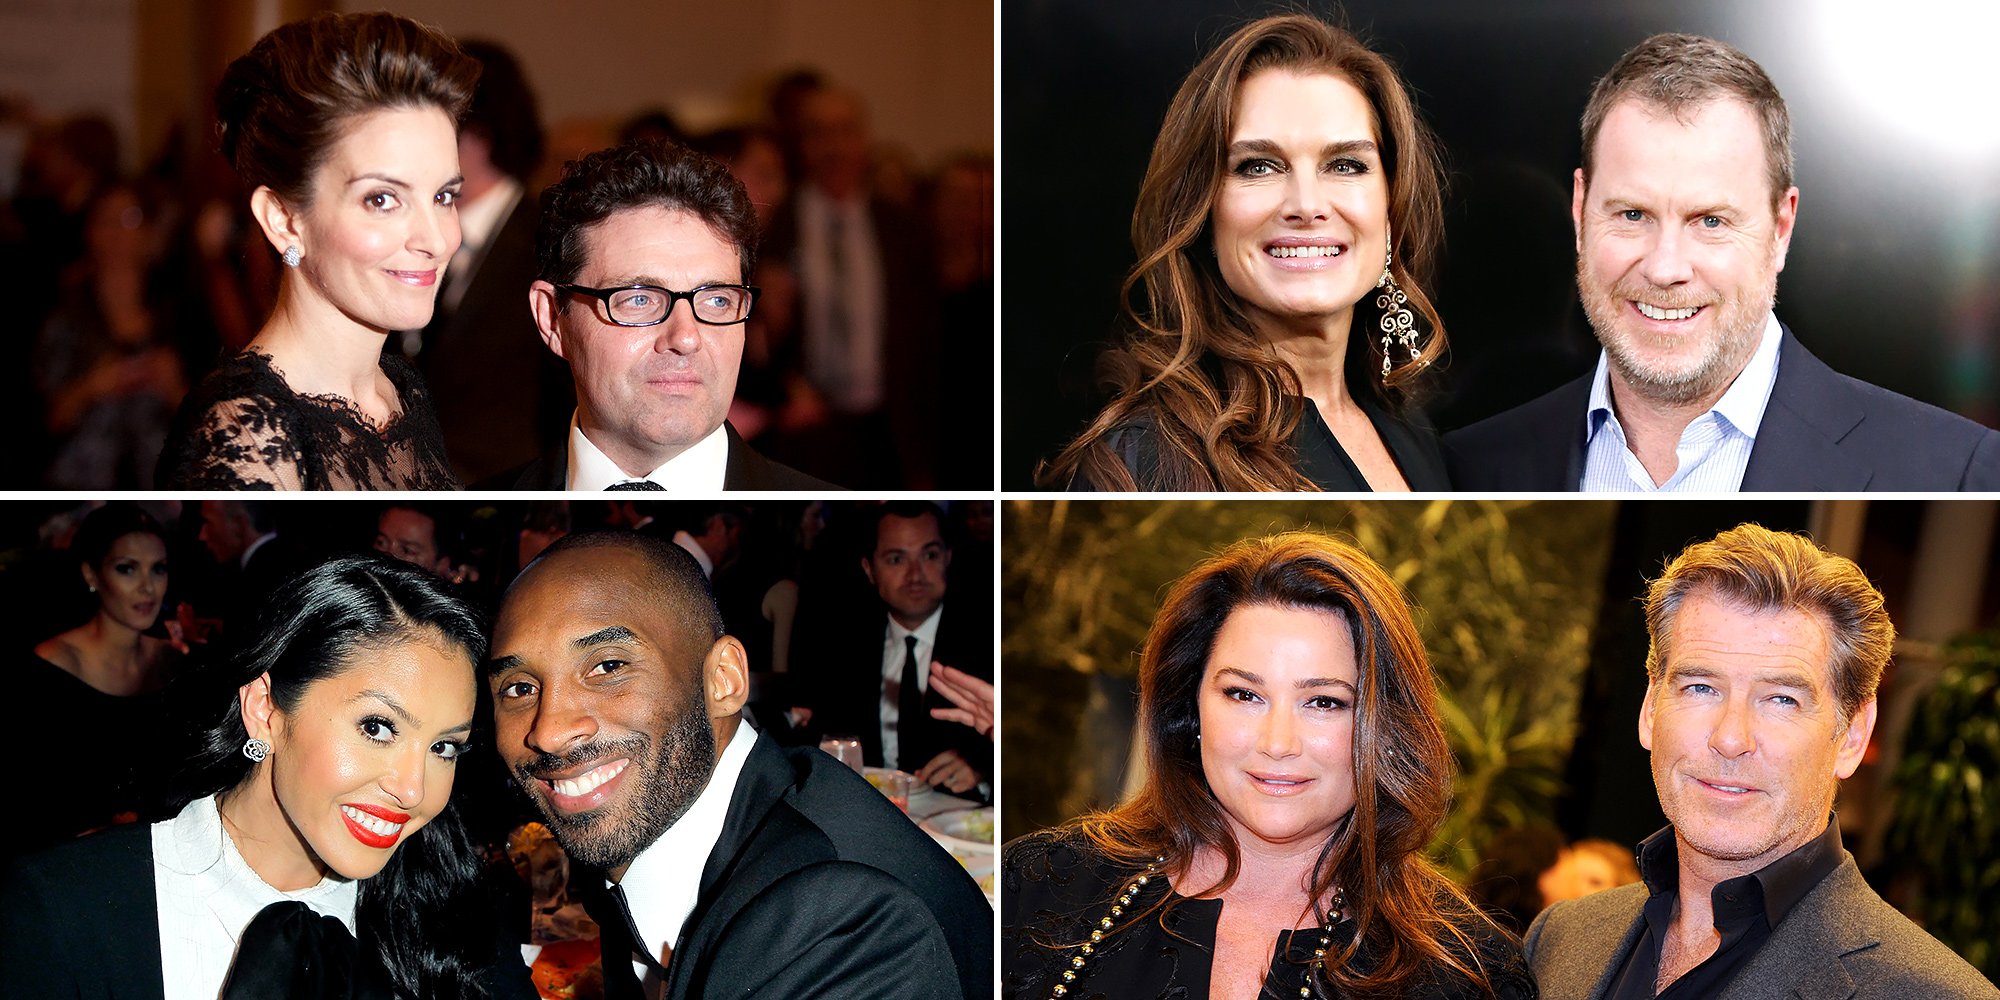 Tina Fey, Brooke Shields, Kobe Bryant, Pierce Bronsan celebrating their wedding anniversaries in 2016.